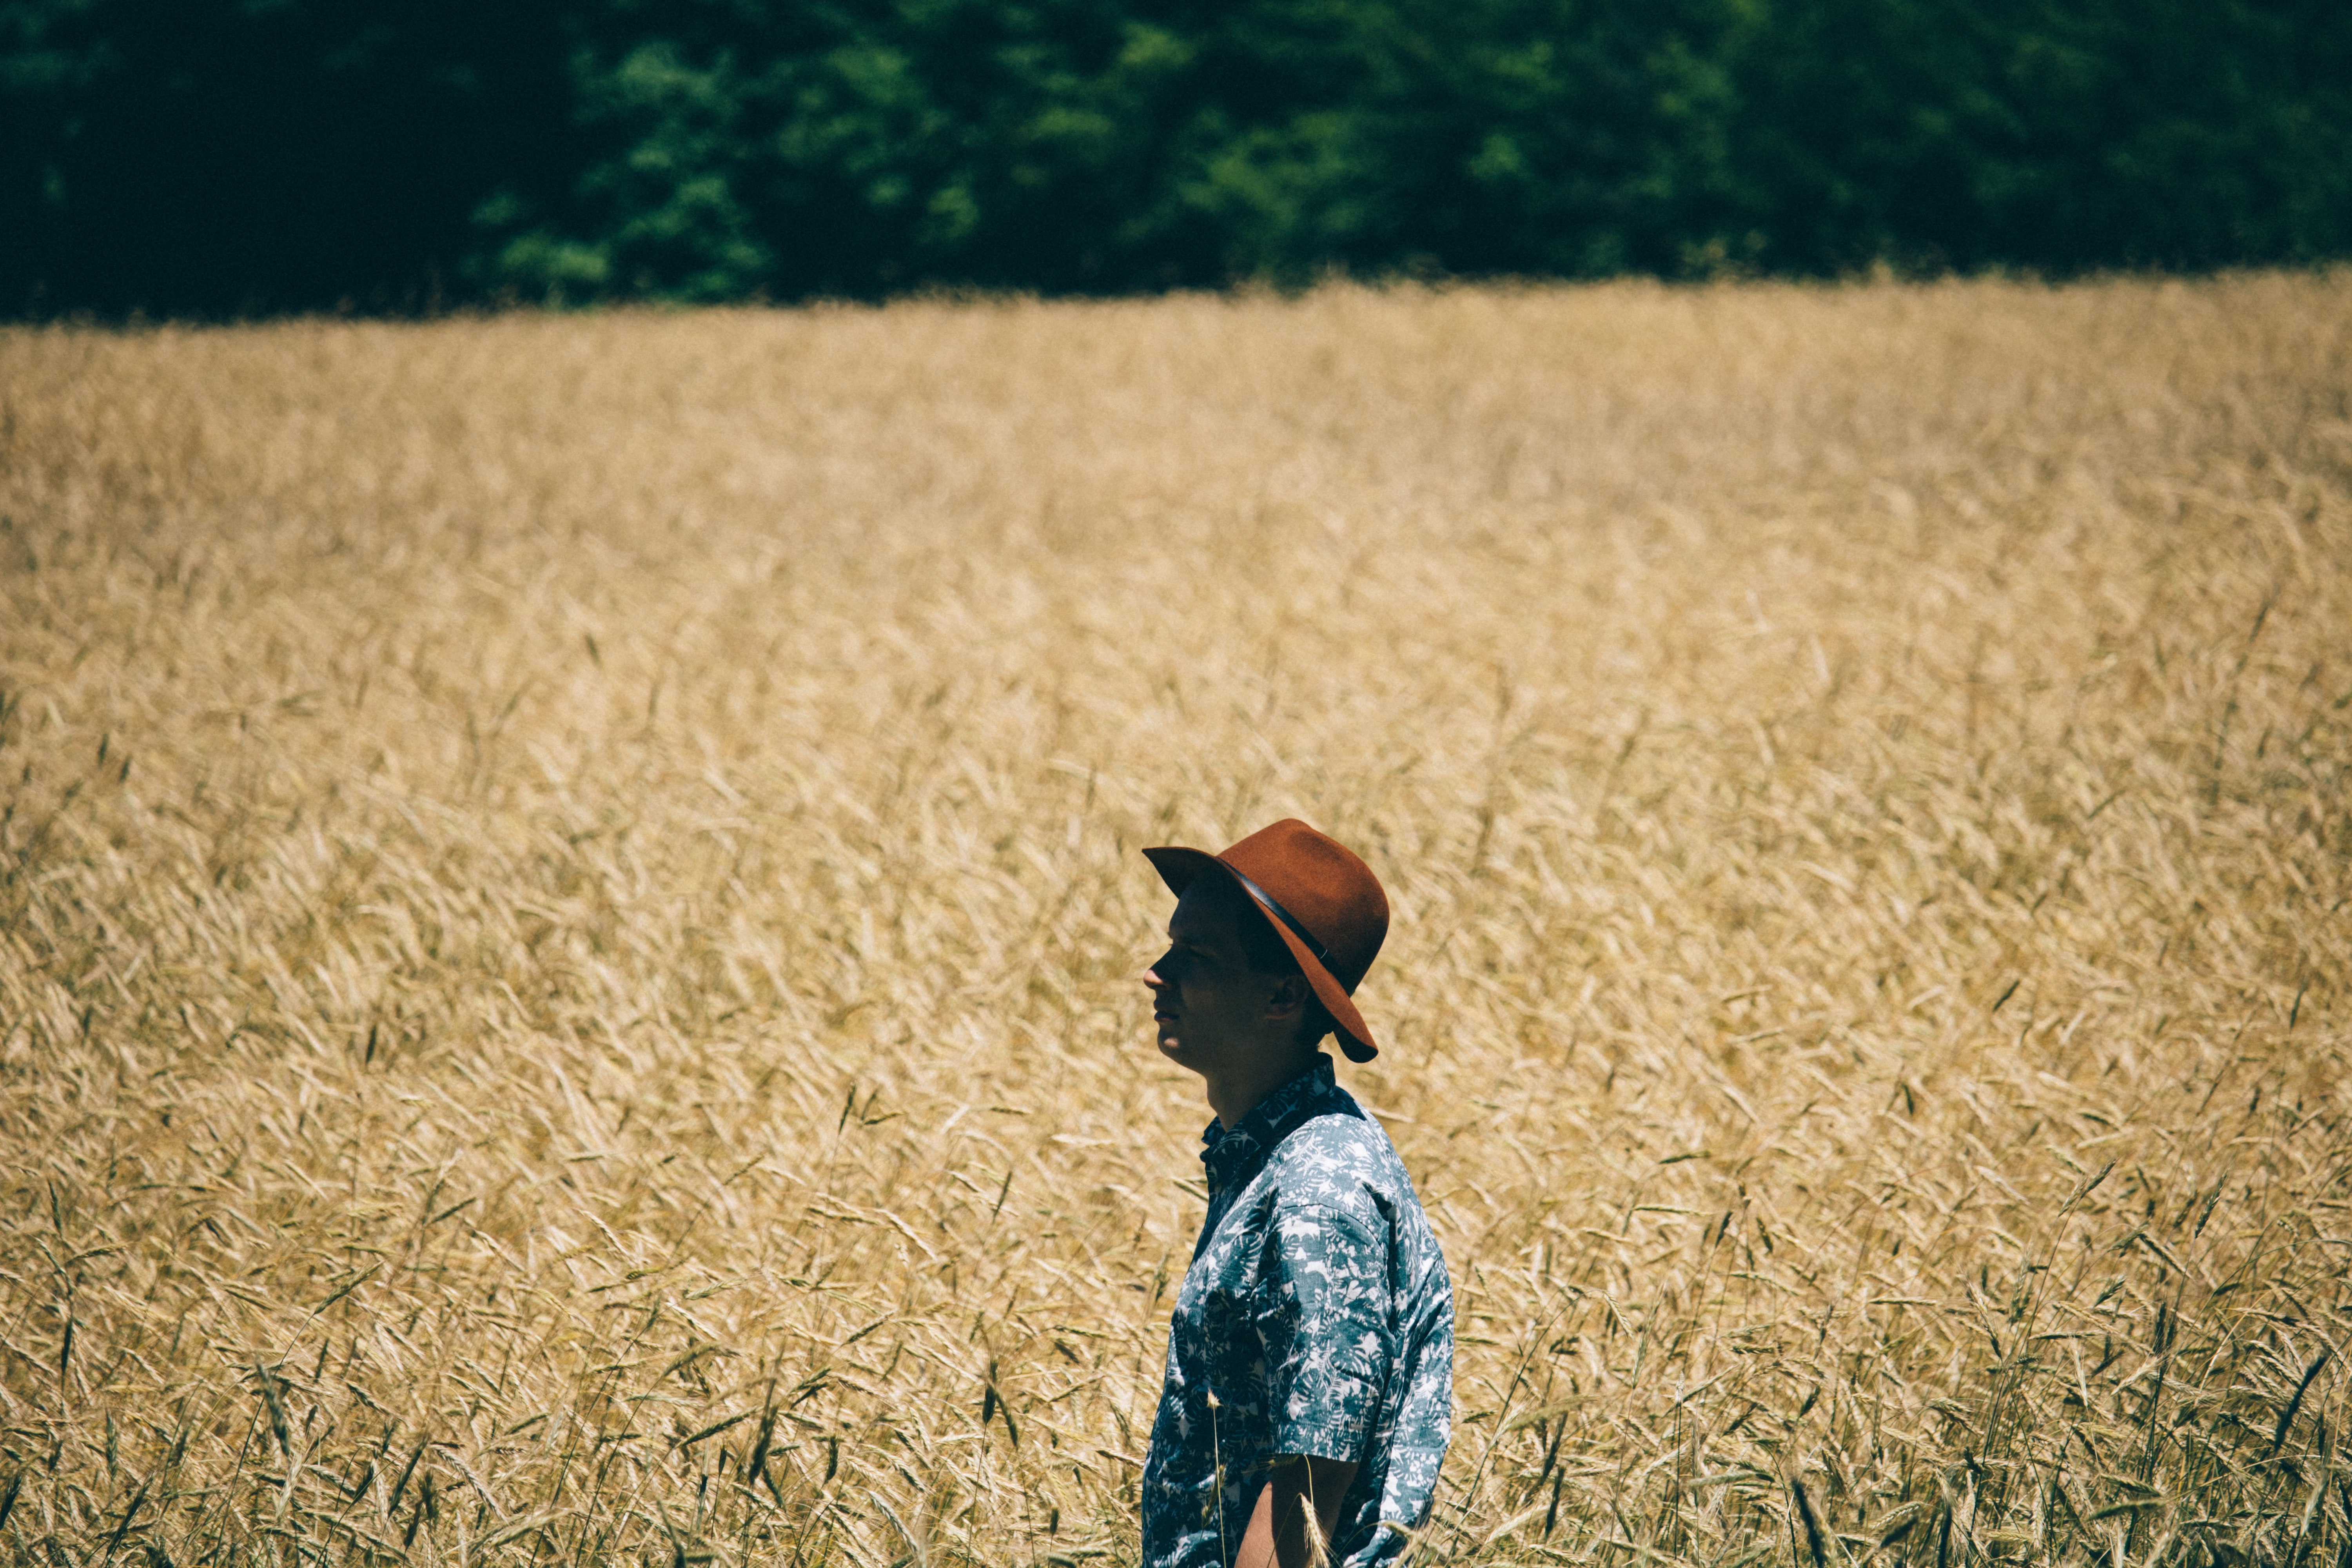 A man wearing a Hawaiian shirt and a brown hat standing in a wheatfield